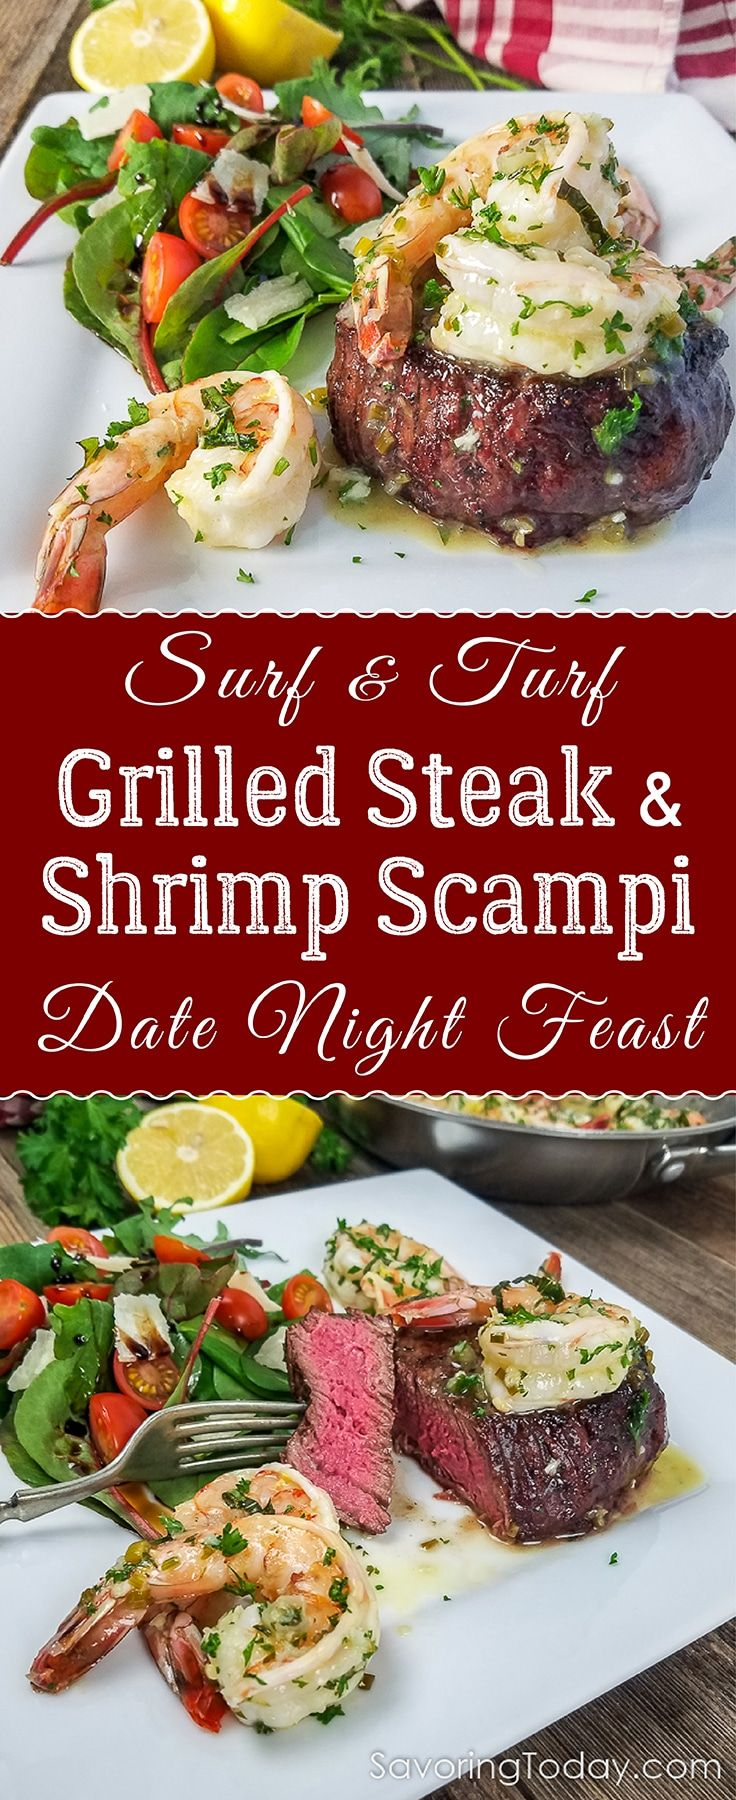 Grilled Steak and Shrimp Scampi recipe is an easy, date night dinner for two. Recipe includes instructions for choosing the best steak and simple tips for really knowing when a steak is cooked to perfection. Grilled steak tenderloin topped with shrimp scampi and served with a garden salad. Steak is cut to show the rosy pink interior cooked to medium-rare. This is restaurant quality surf and turf anyone can make to delight their sweetheart.